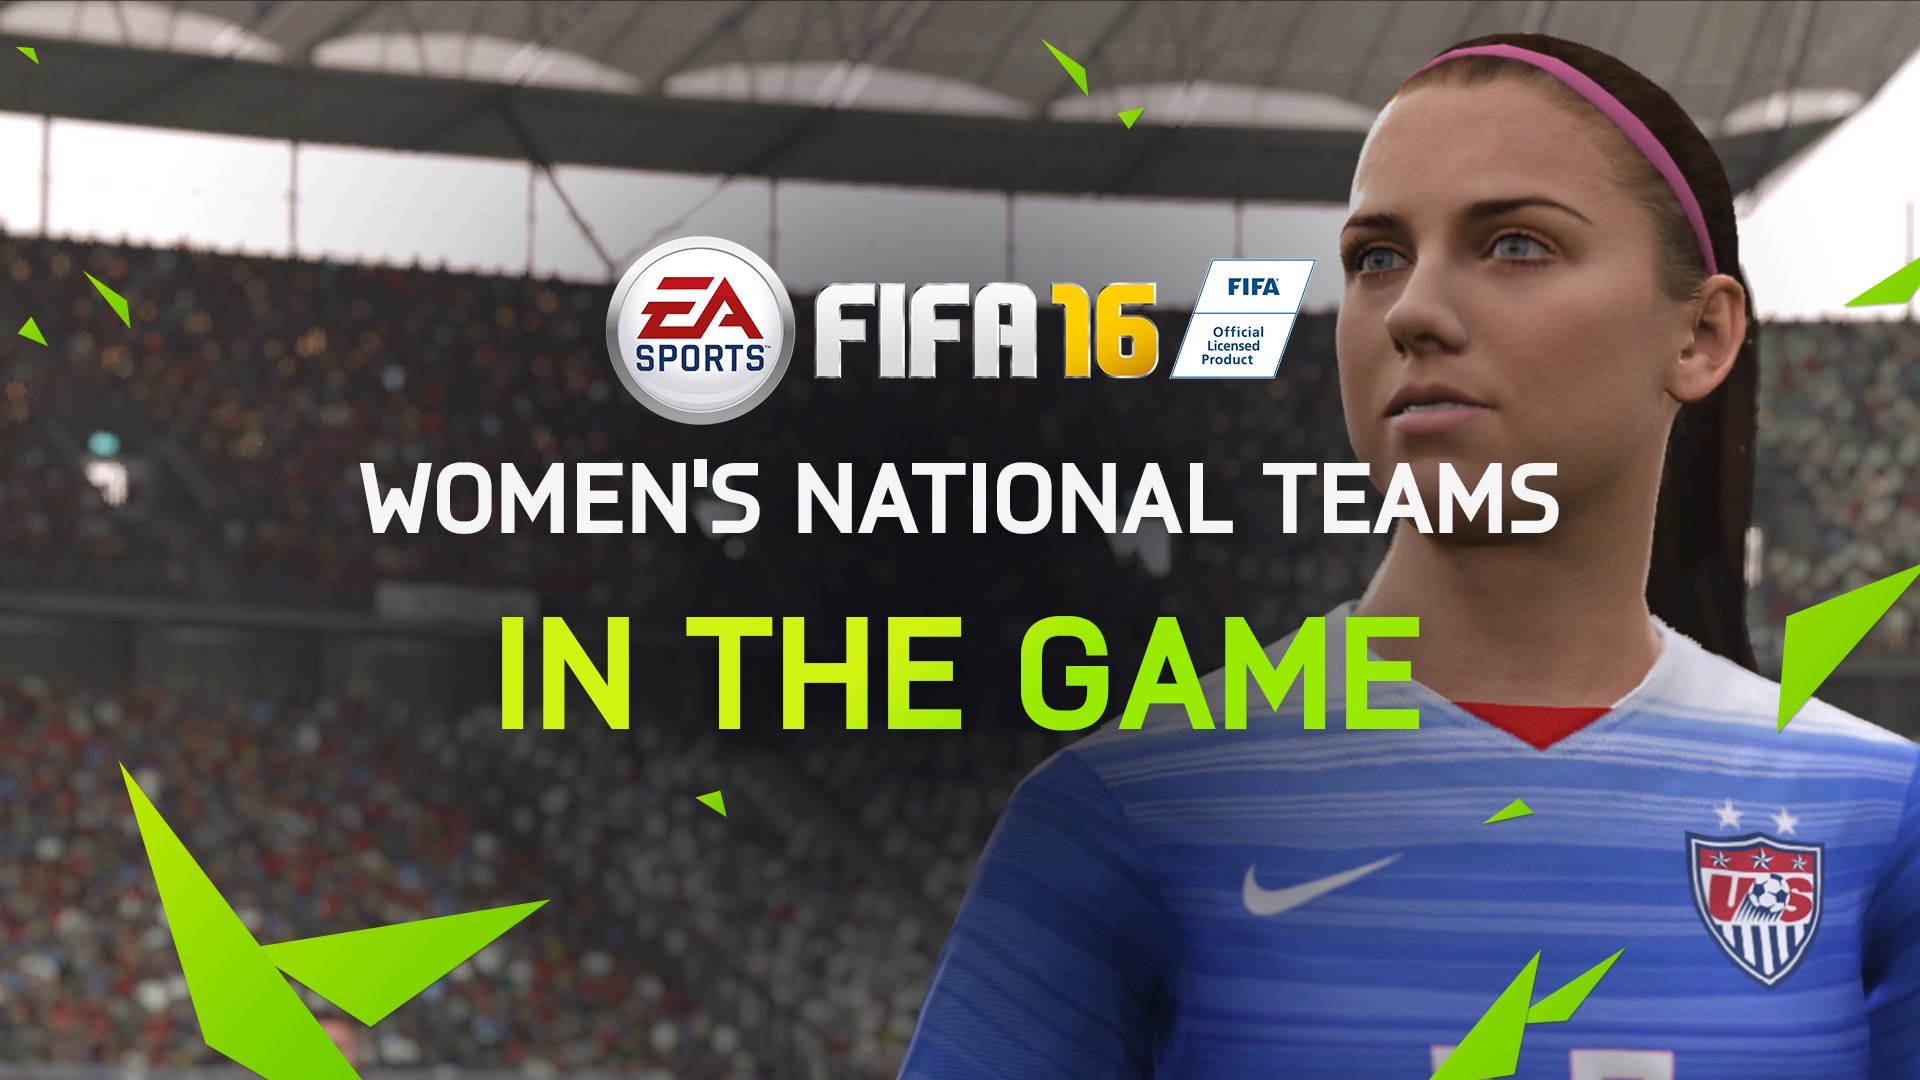 FIFA 16 teased in trailer – Women's national teams now included